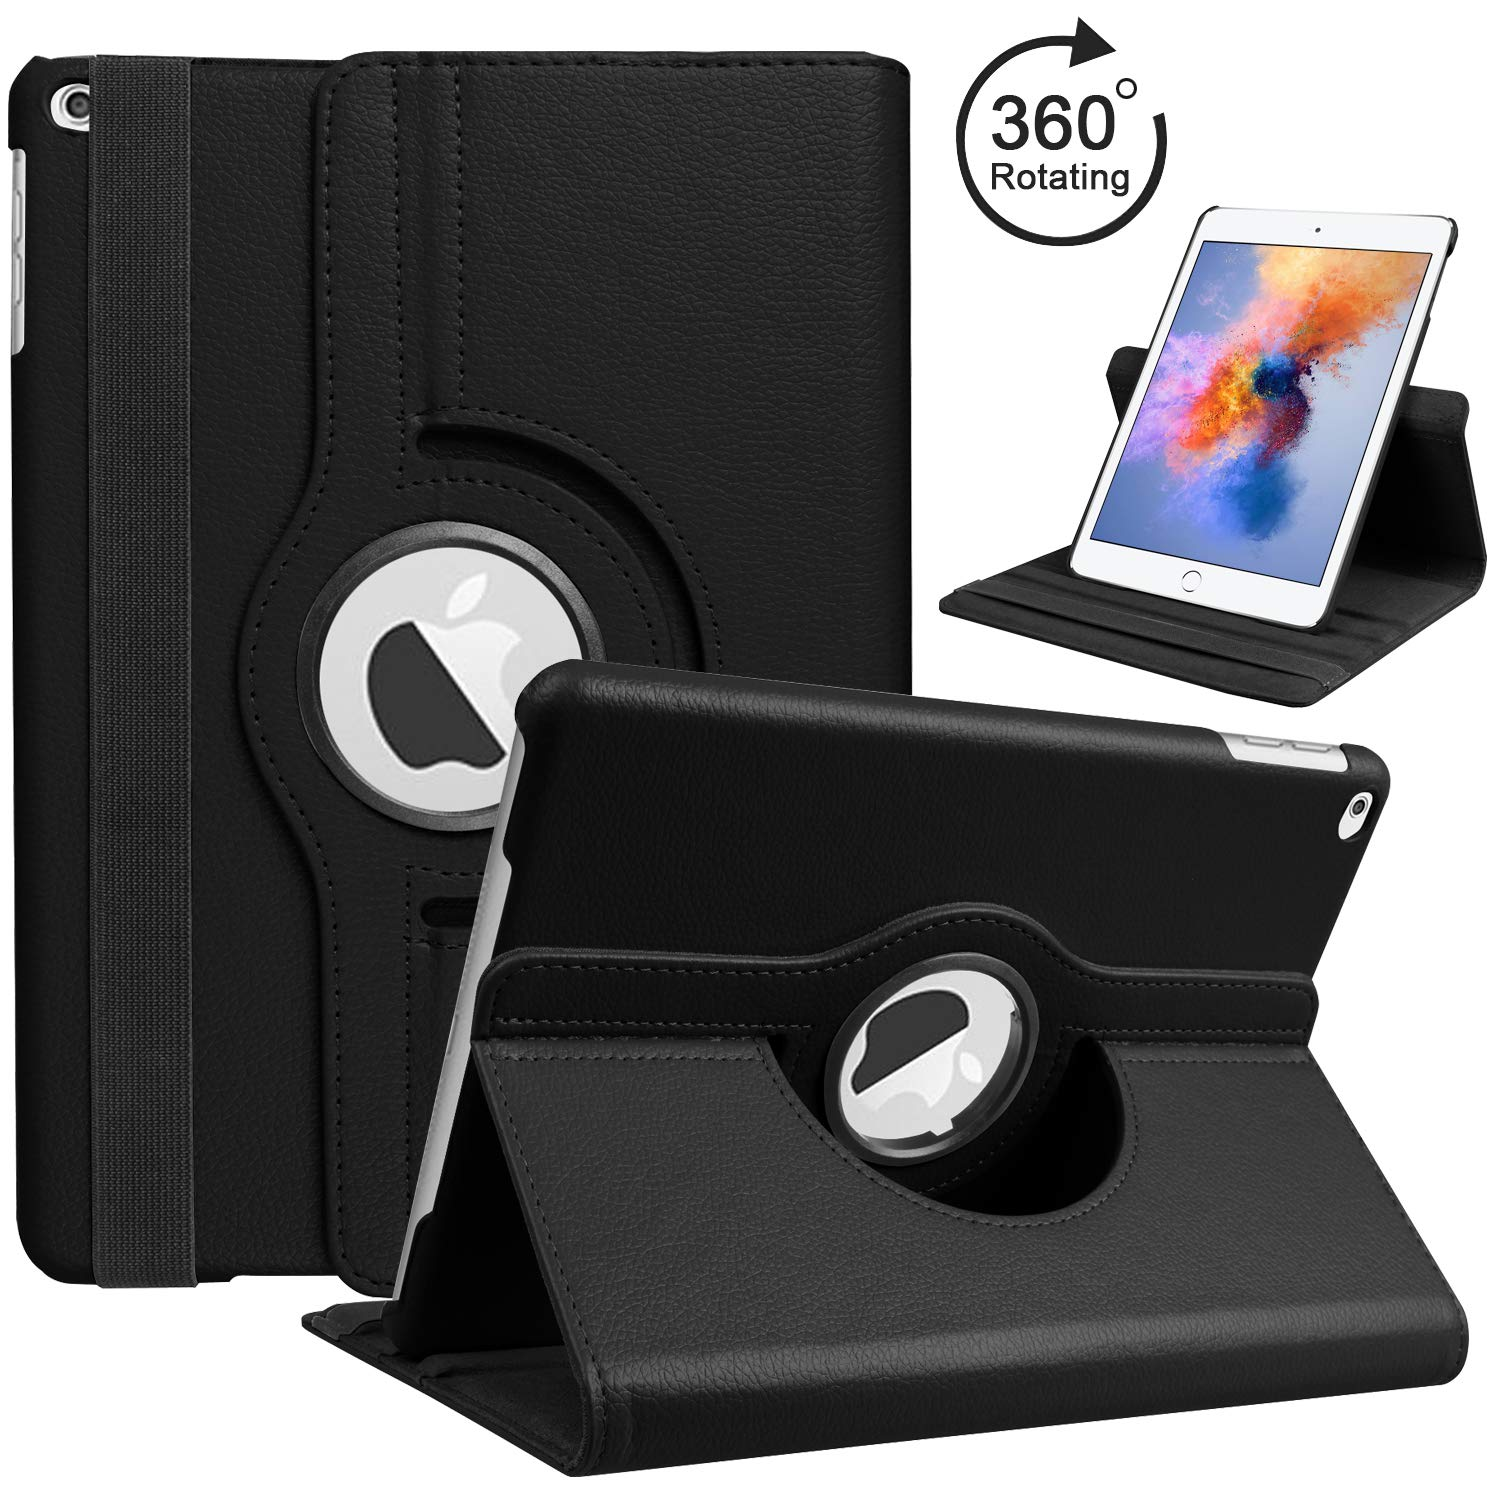 For Case Apple iPad 2 iPad 3 iPad 4 PU Leather Smart Stand Flip Case Cover 360 Rotating Screen Protector Film Stylus Pen GiftsFor Case Apple iPad 2 iPad 3 iPad 4 PU Leather Smart Stand Flip Case Cover 360 Rotating Screen Protector Film Stylus Pen Gifts